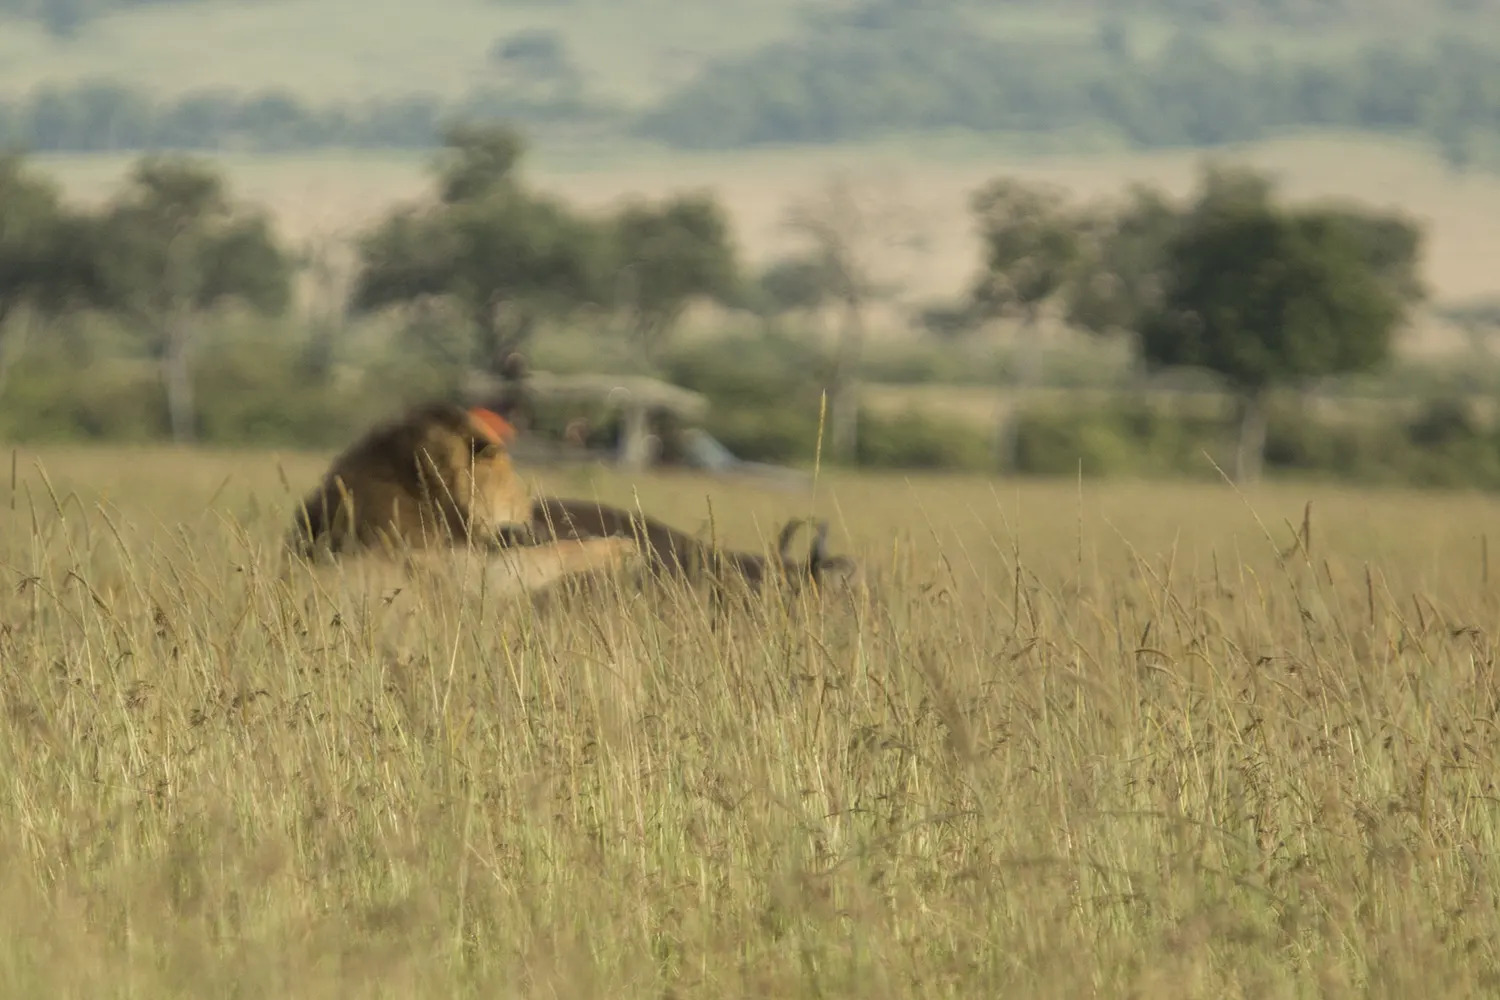 Lion and buffalo blurred